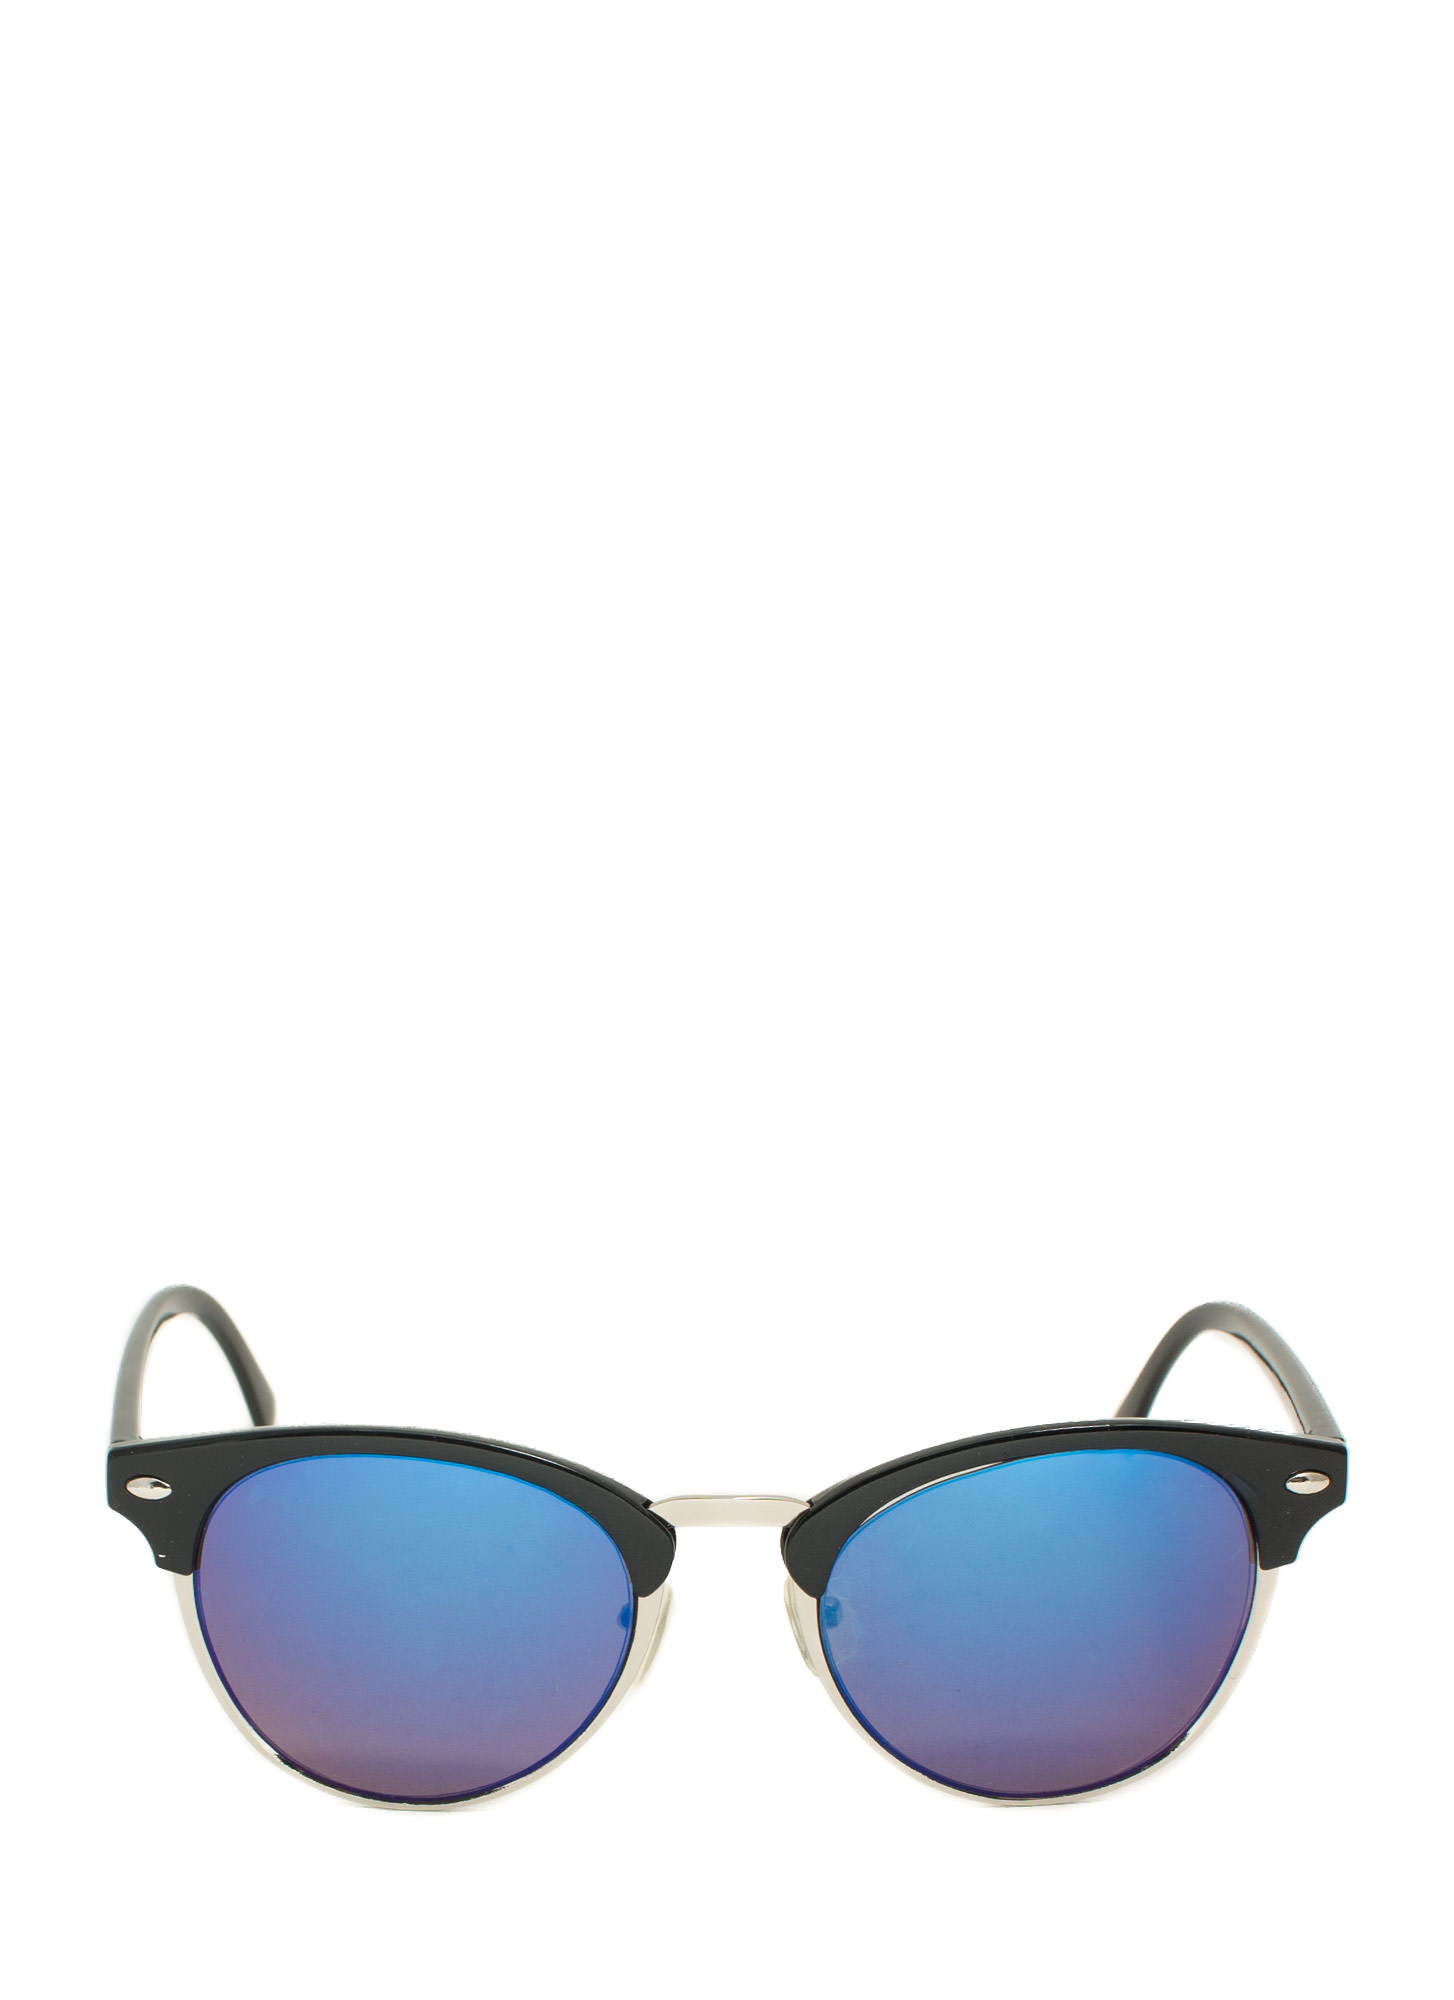 Top Accent Reflective Sunglasses BLUESILVER